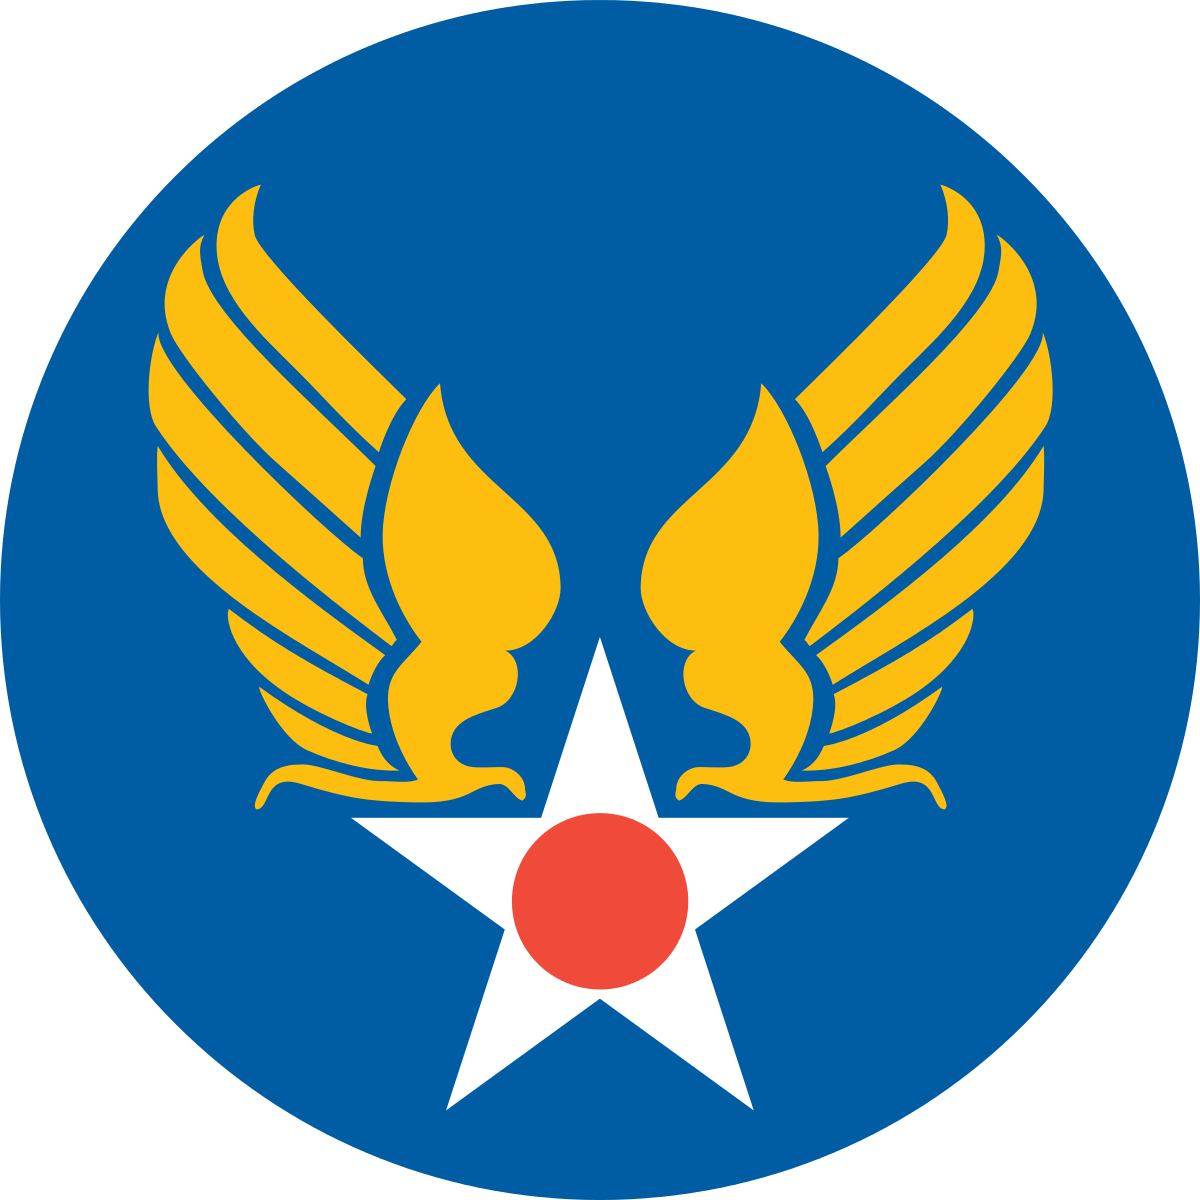 United states army air. Military clipart history american